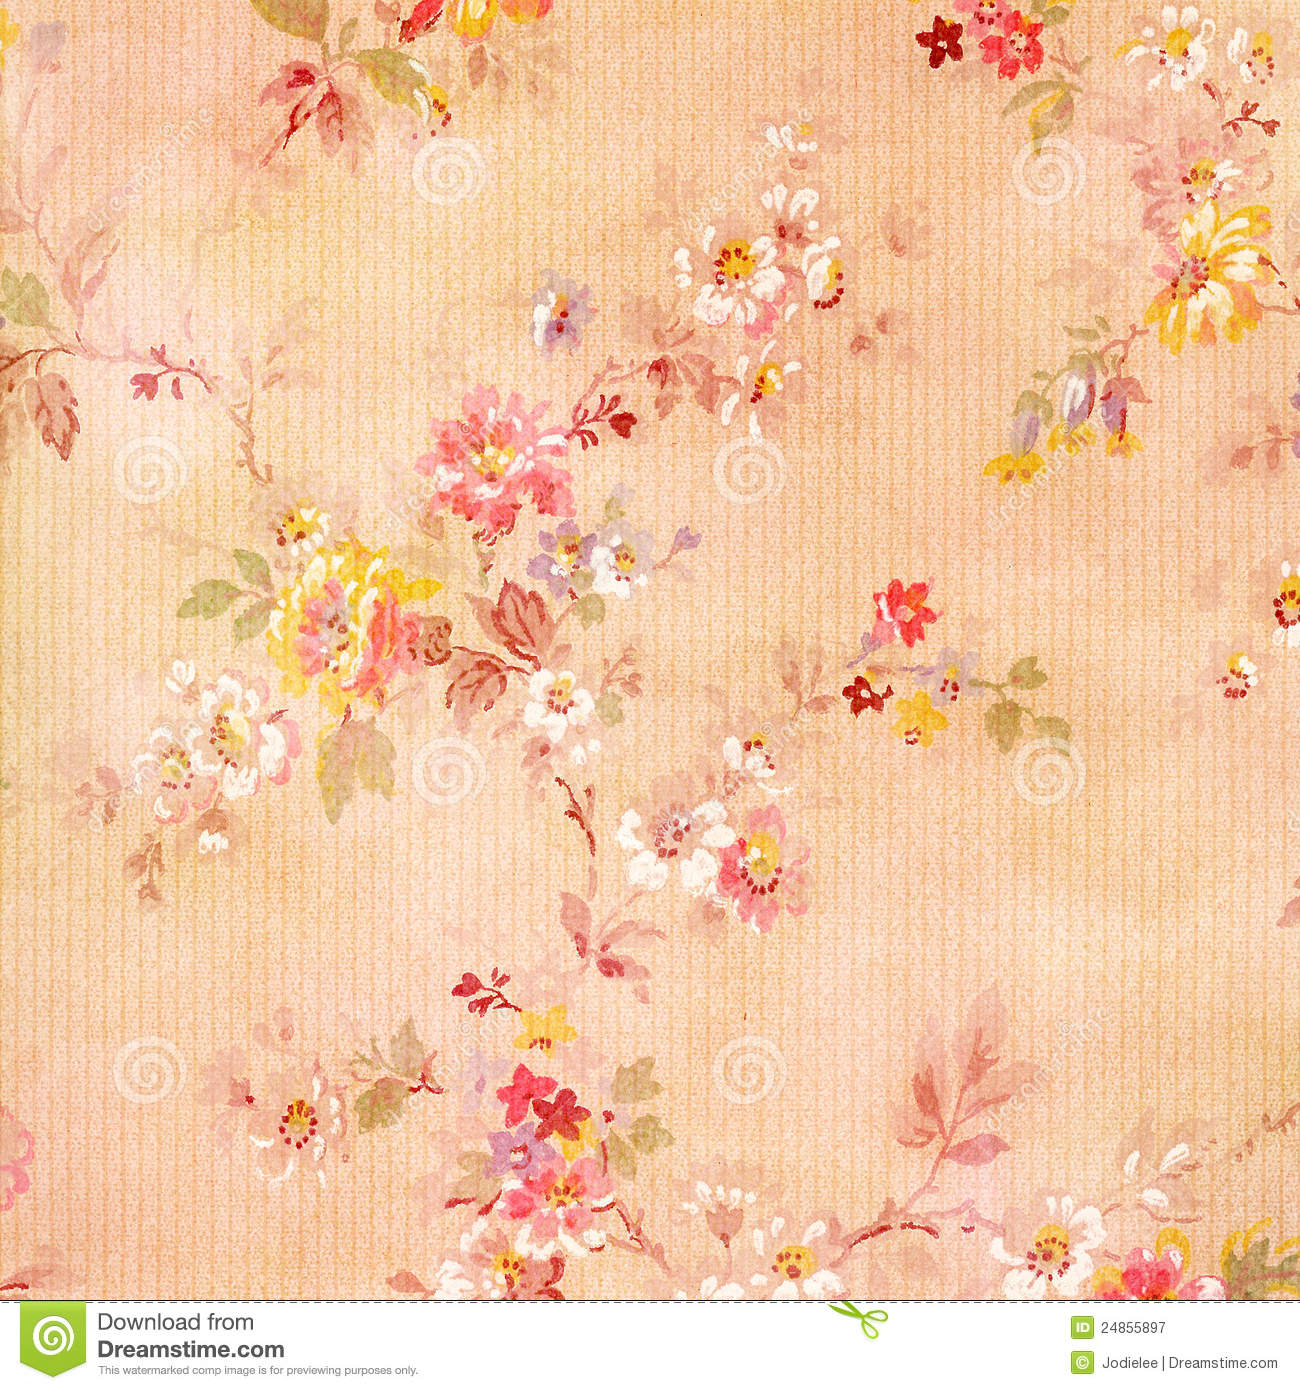 Wallpapers Shabby Chic Wedding 523 X 341 136 Kb Jpeg HD 1300x1390